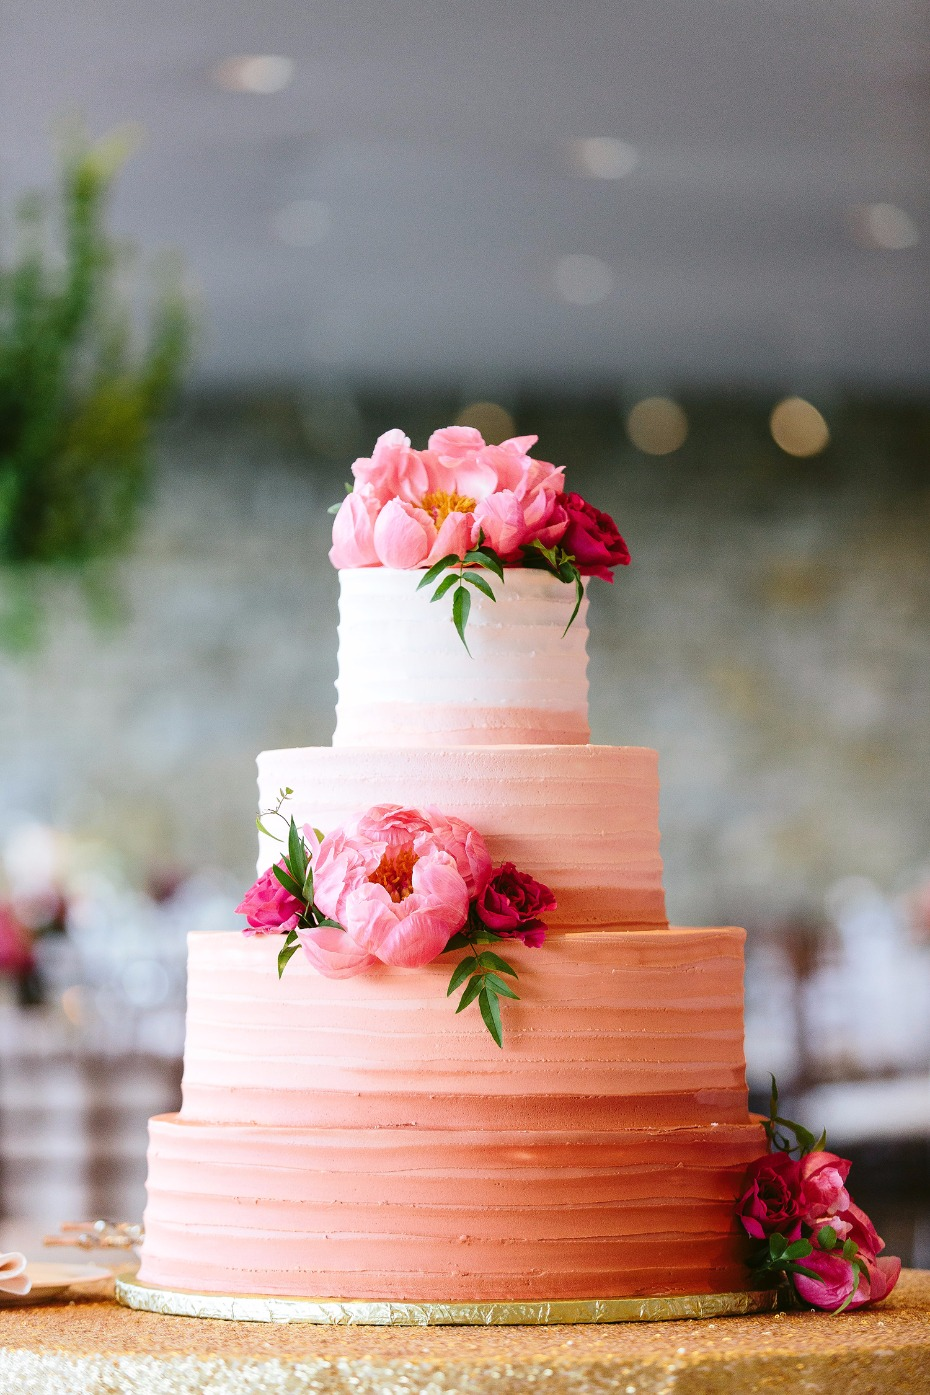 Pink ombre wedding cake with flowers